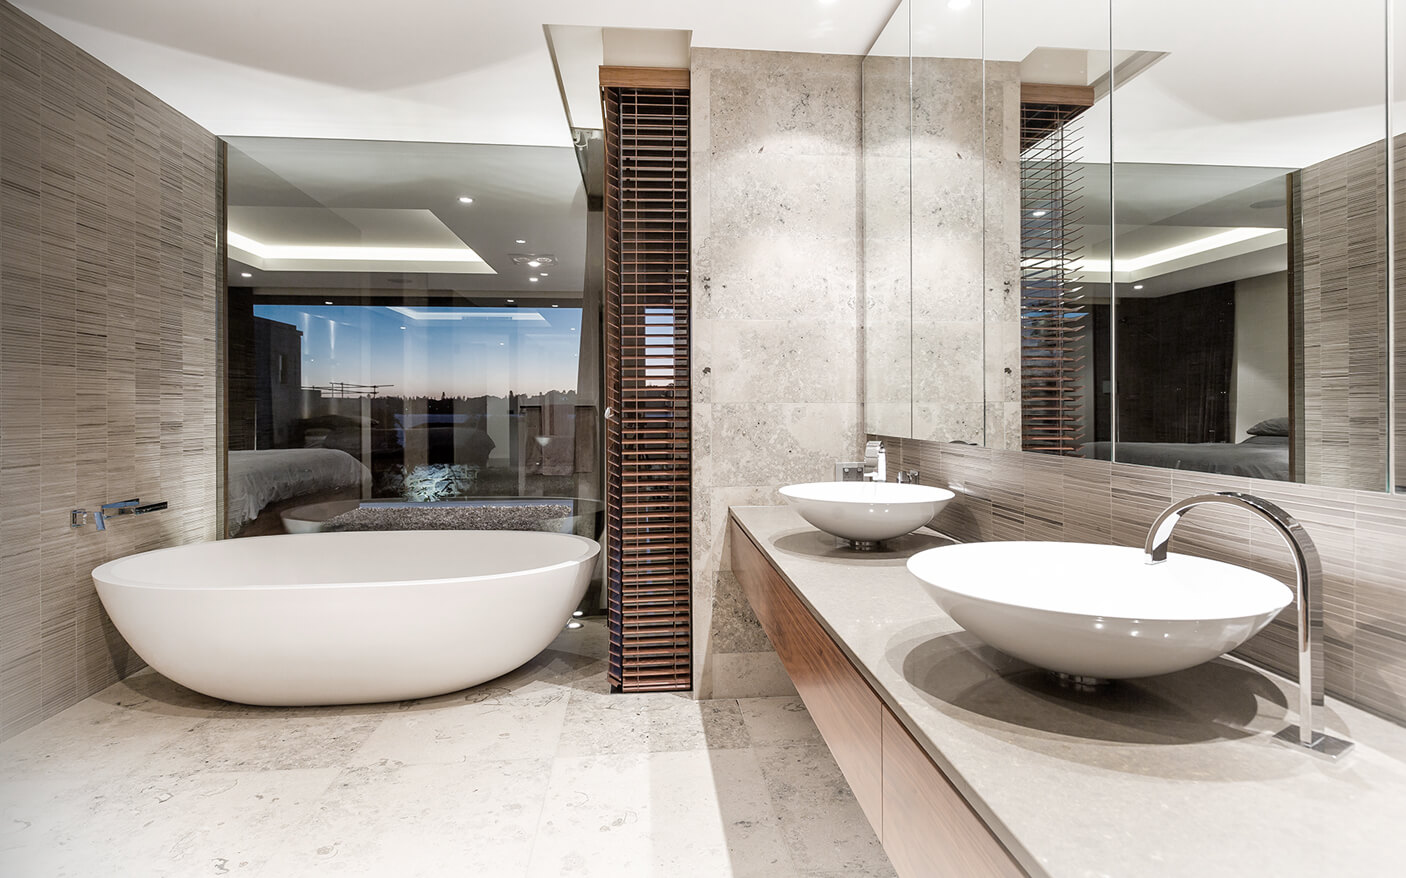 Dalkeith residence giorgi for Bathroom decor osborne park